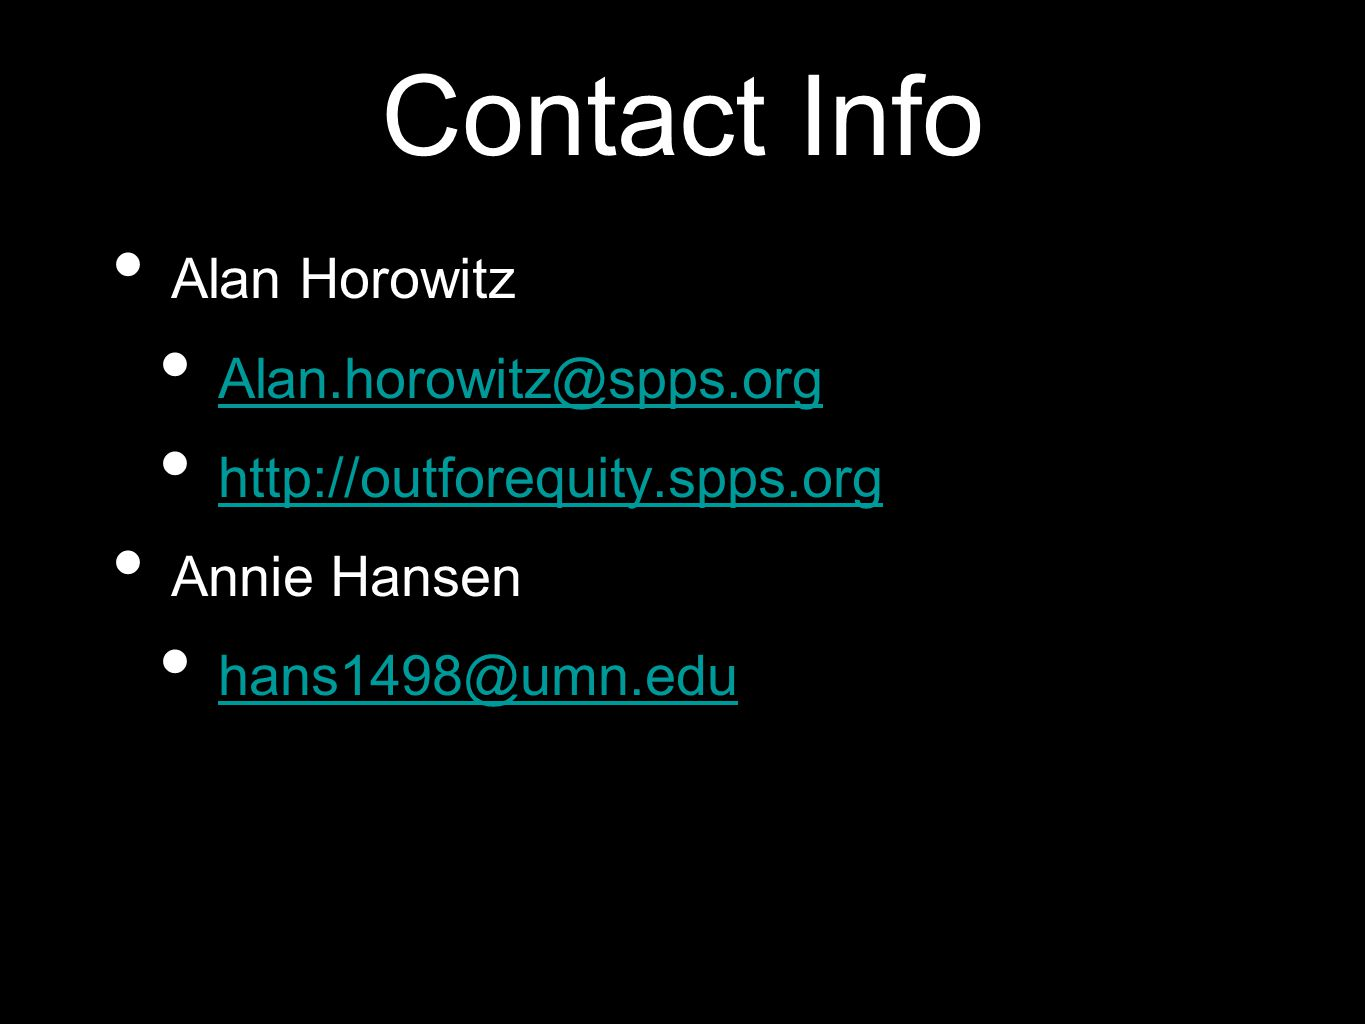 Contact Info Alan Horowitz. Alan.horowitz@spps.org.